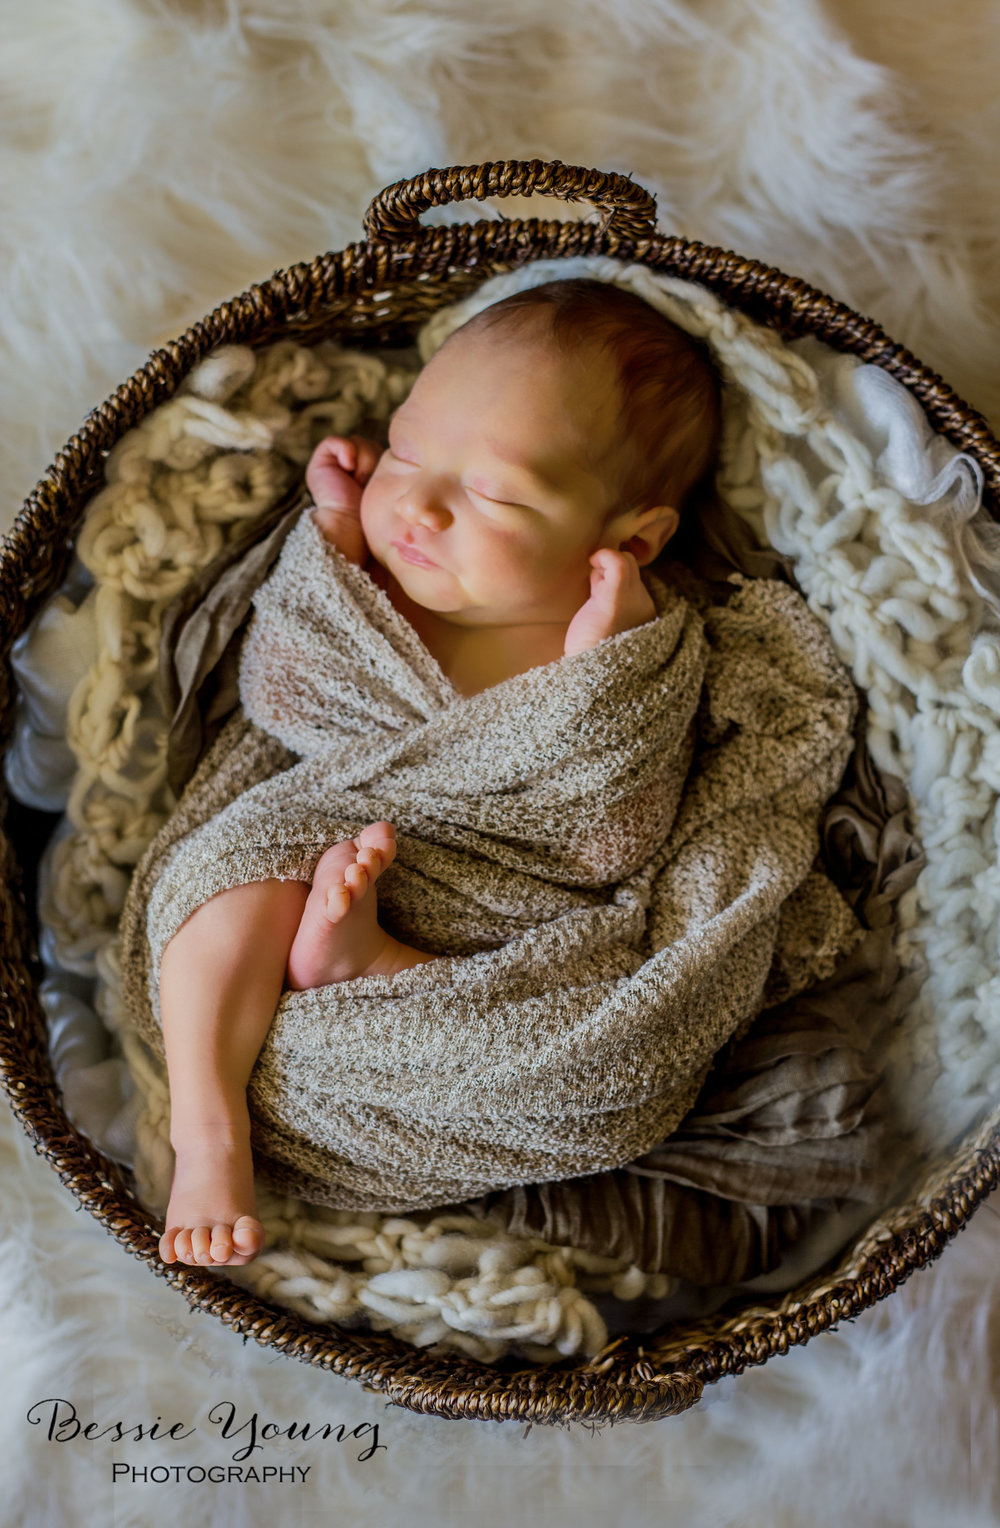 Fresno Newborn Portraits - Mateo - Bessie Young Photography-2.jpg